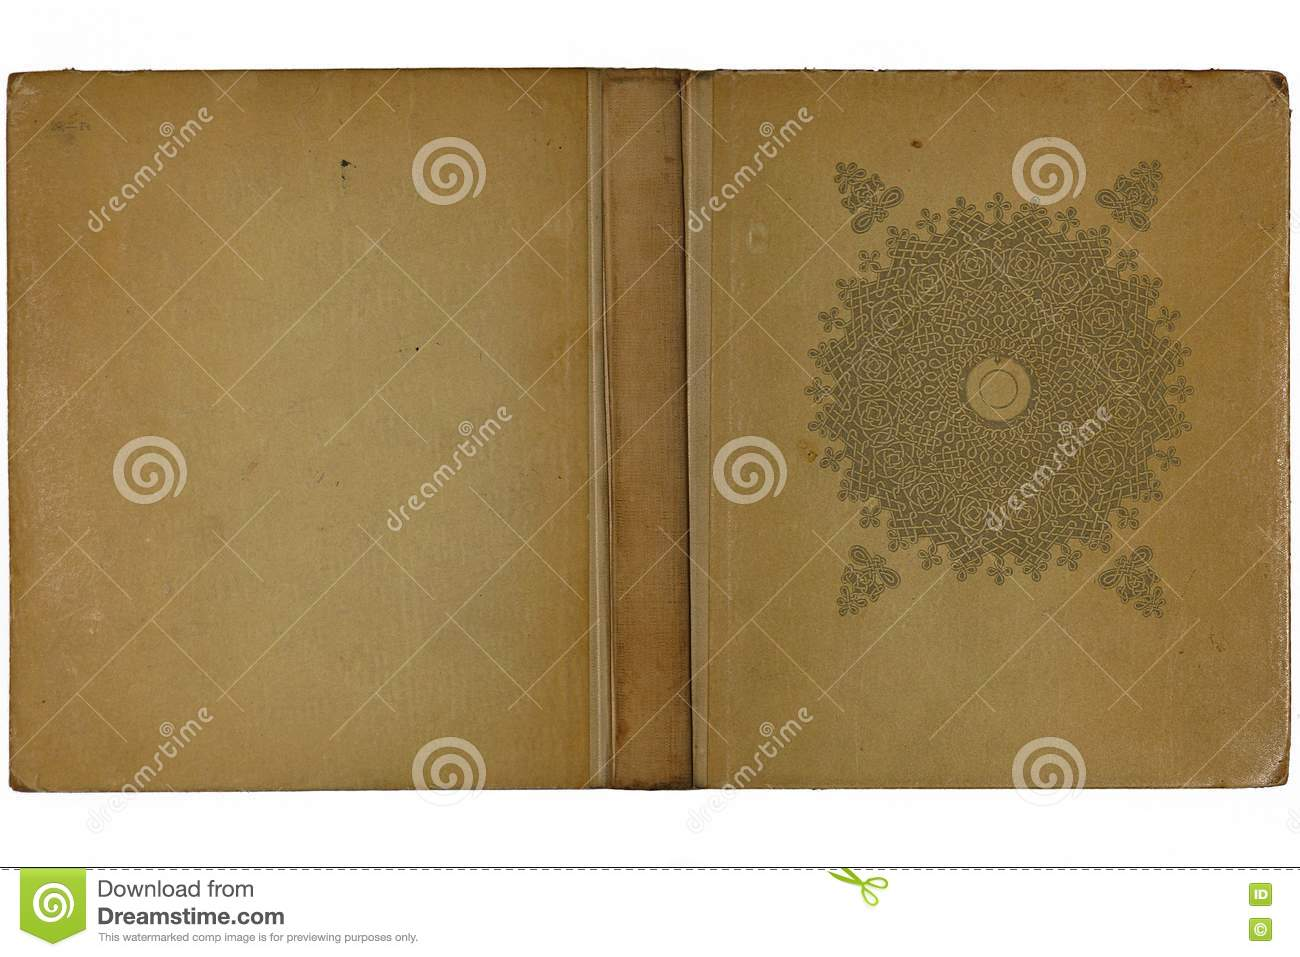 Book Cover Images Royalty Free : Opened old book cover royalty free stock images image